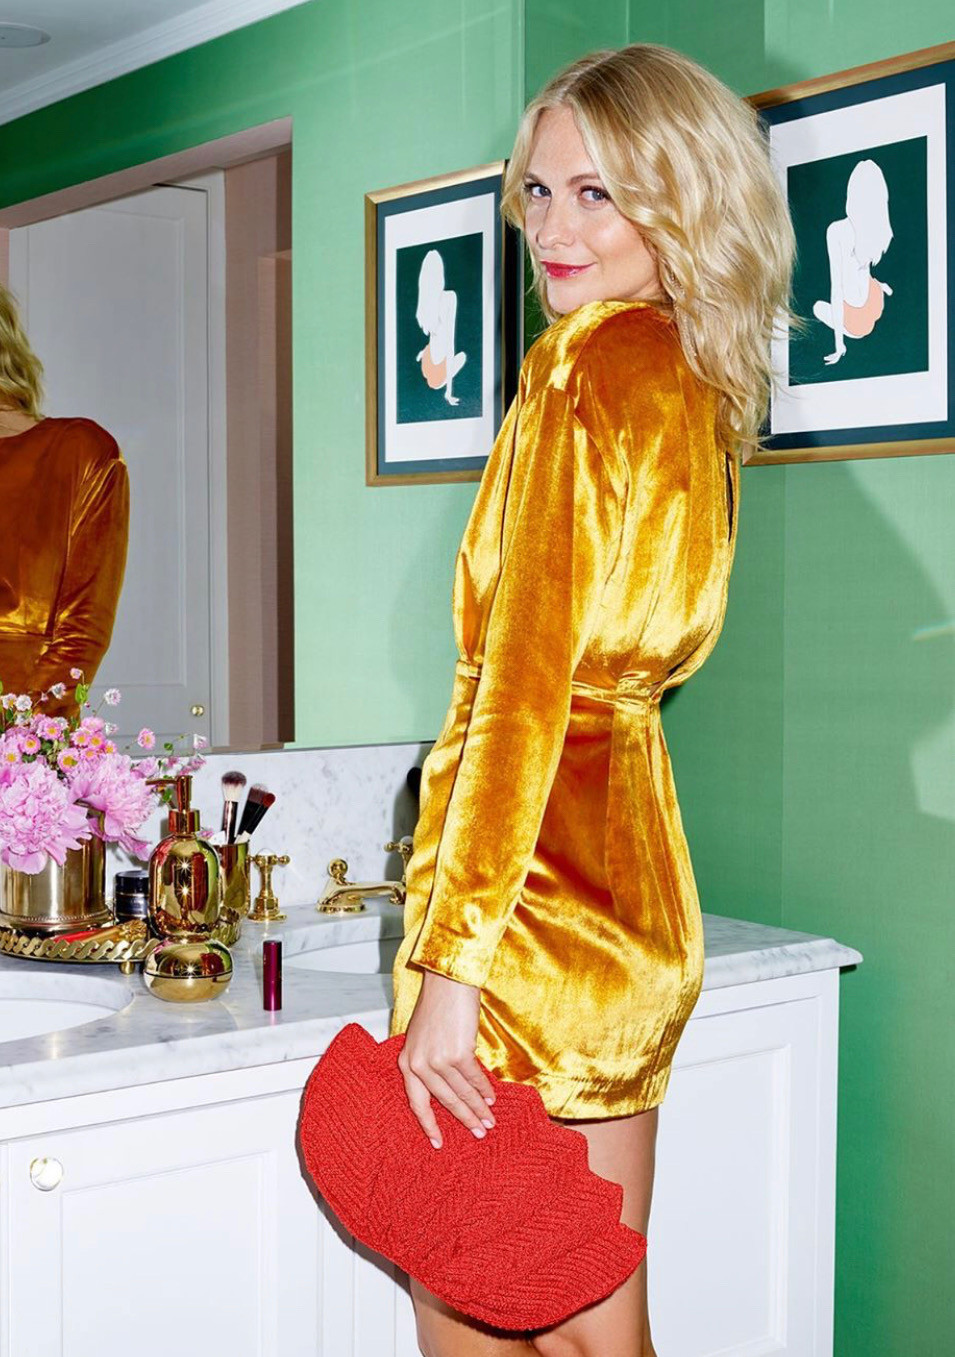 Poppy delevingne standing in bathroom with gold velvet h&m dress